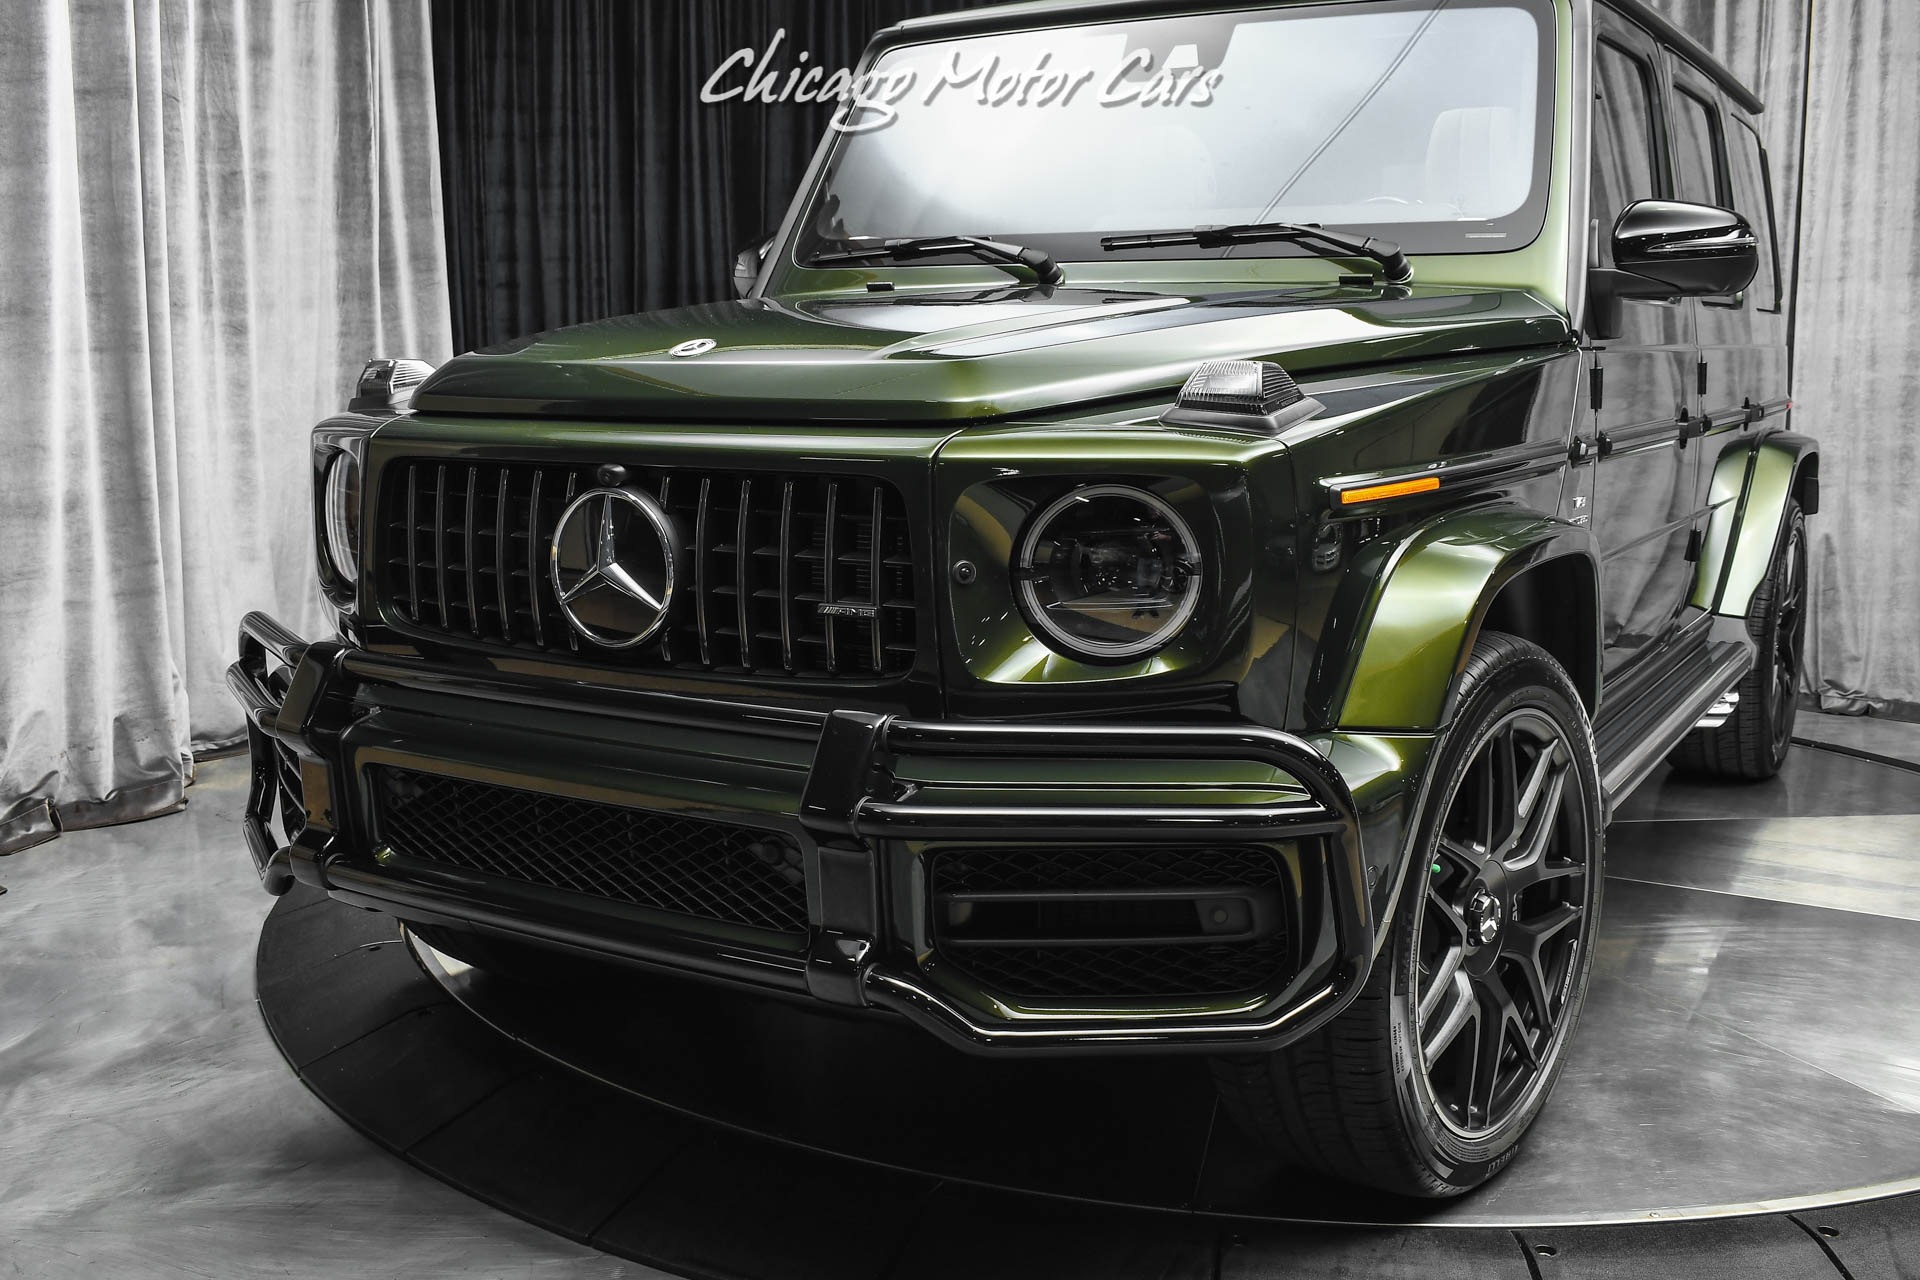 Used-2021-Mercedes-Benz-G63-AMG-G-Manufaktur-Olive-Metallic-Interior-Package-PLUS-Carbon-Fiber